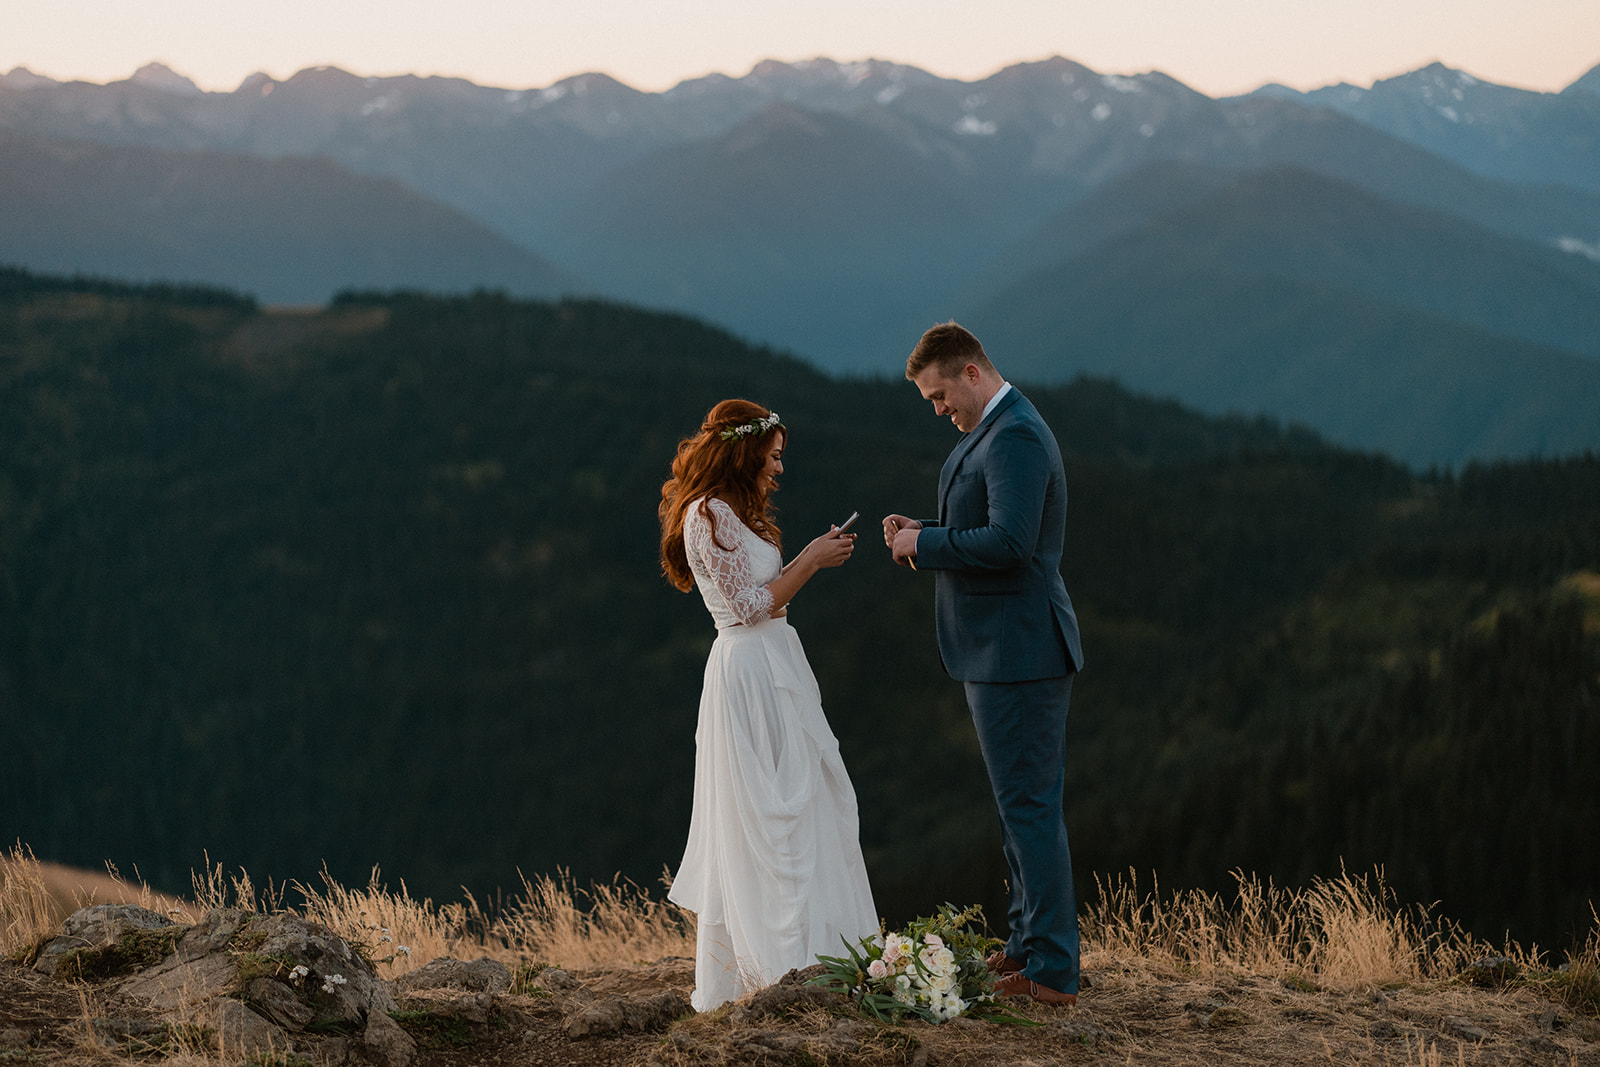 bride and groom exchanging vows in the mountains at sunrise